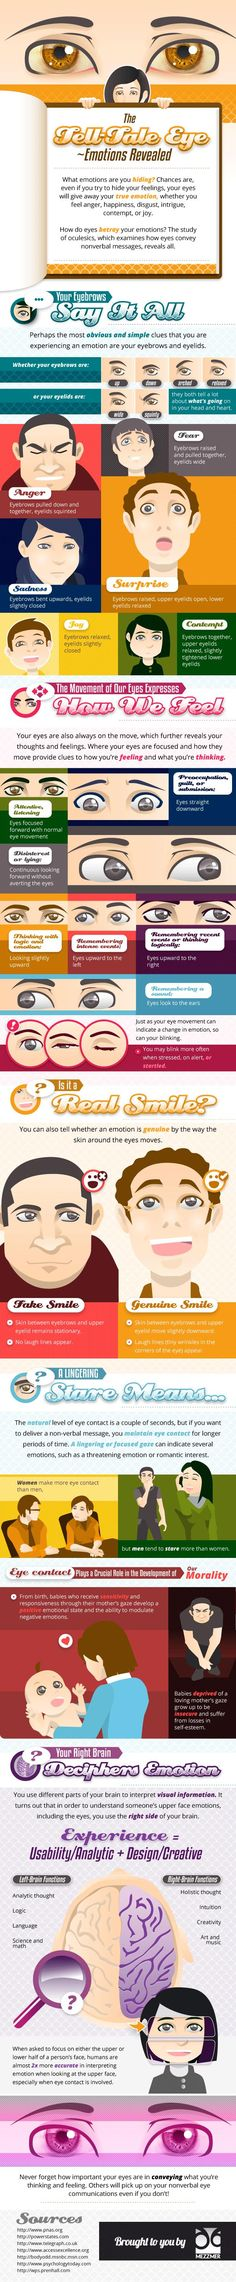 The tell-tale-eye: Emotions revealed [infographic]